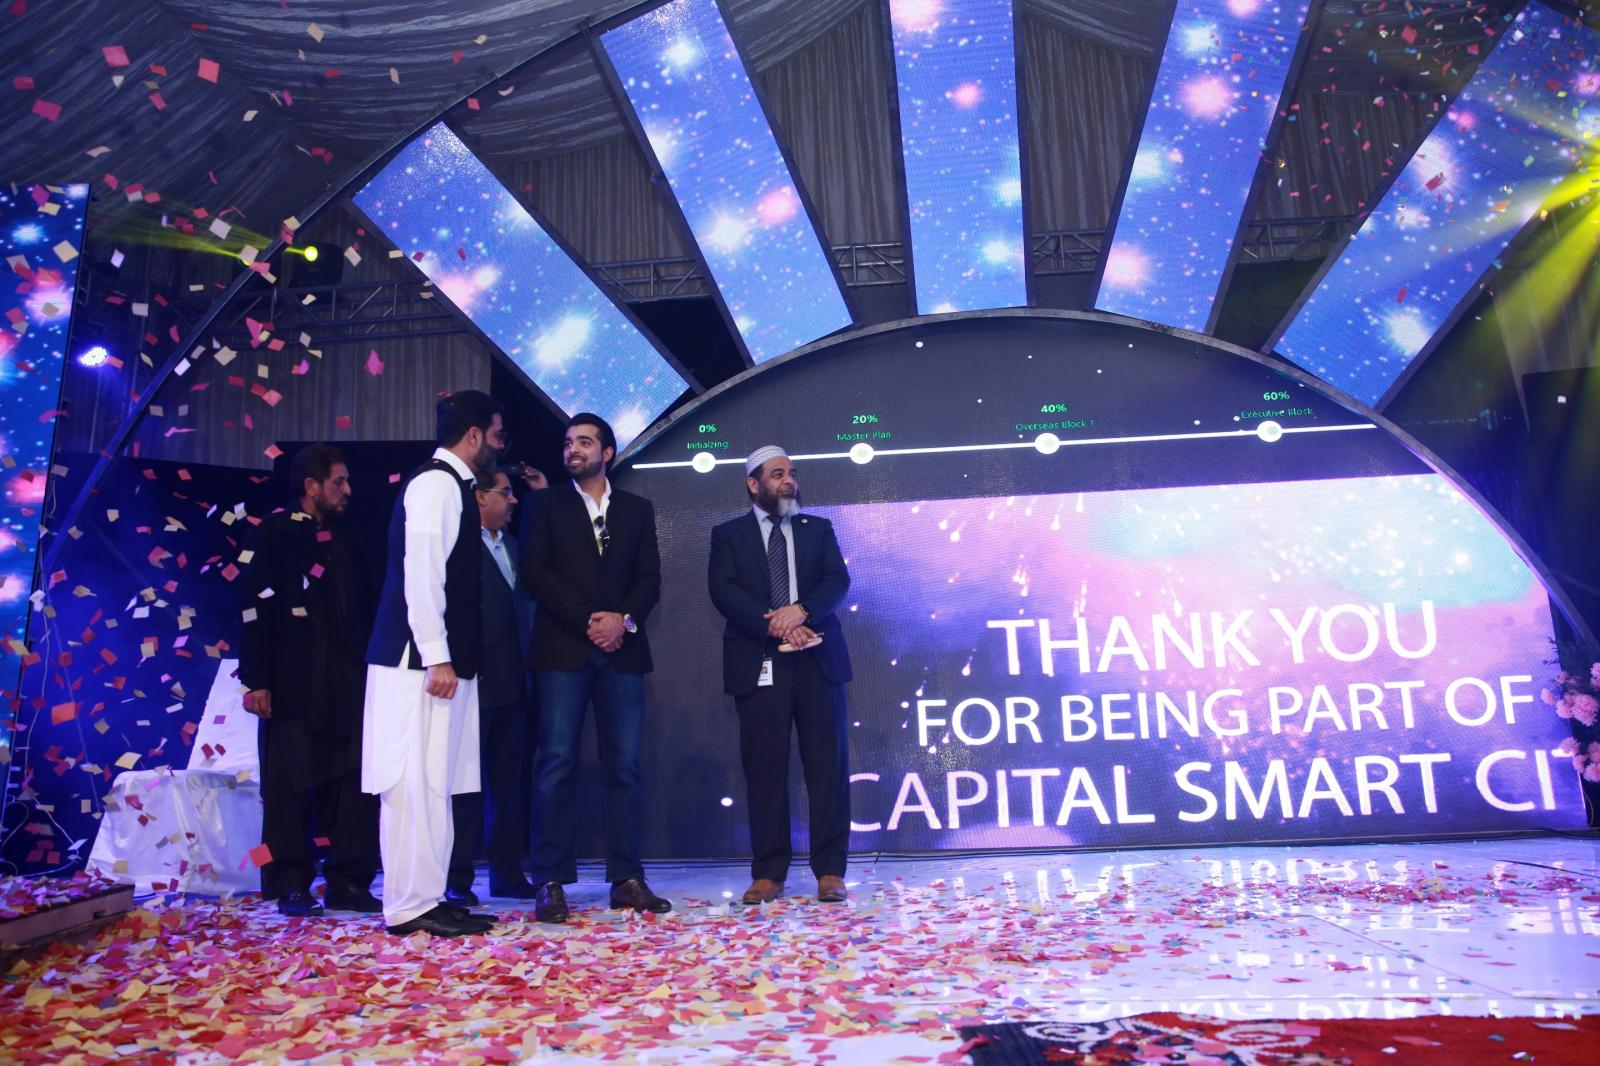 1st Balloting of Capital Smart City